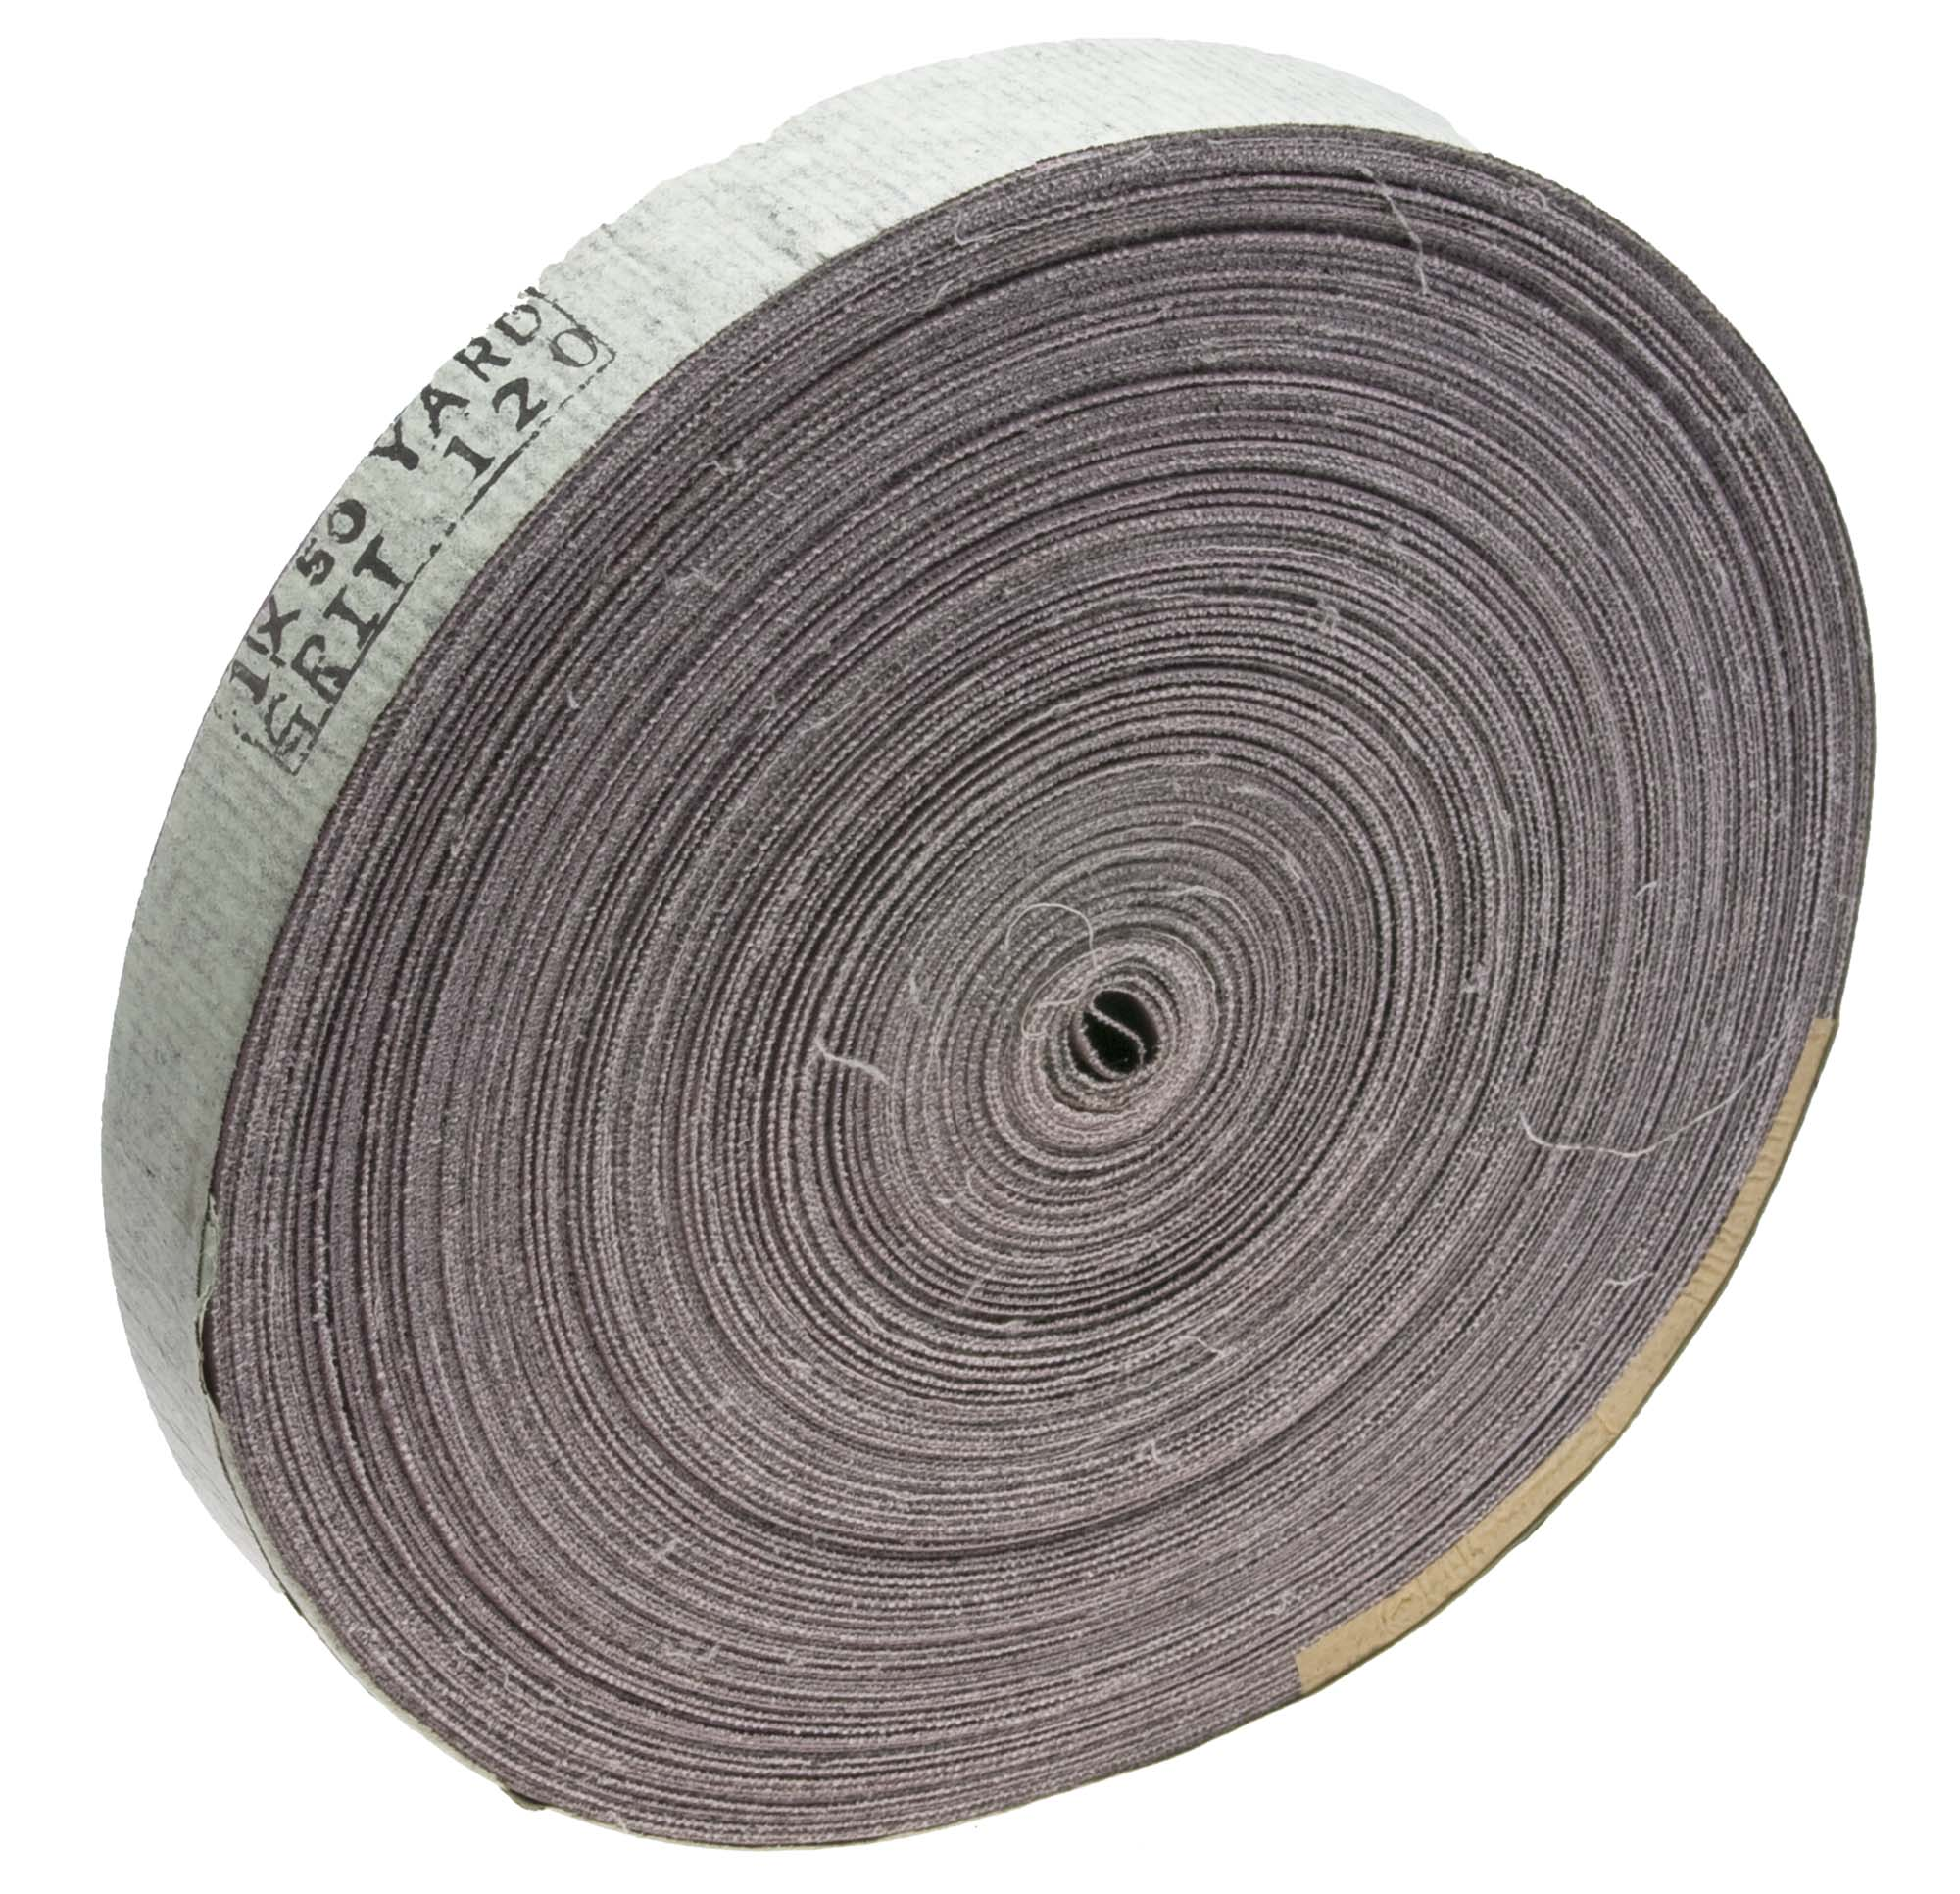 2 In x 100 Grit Import Aloxite Roll